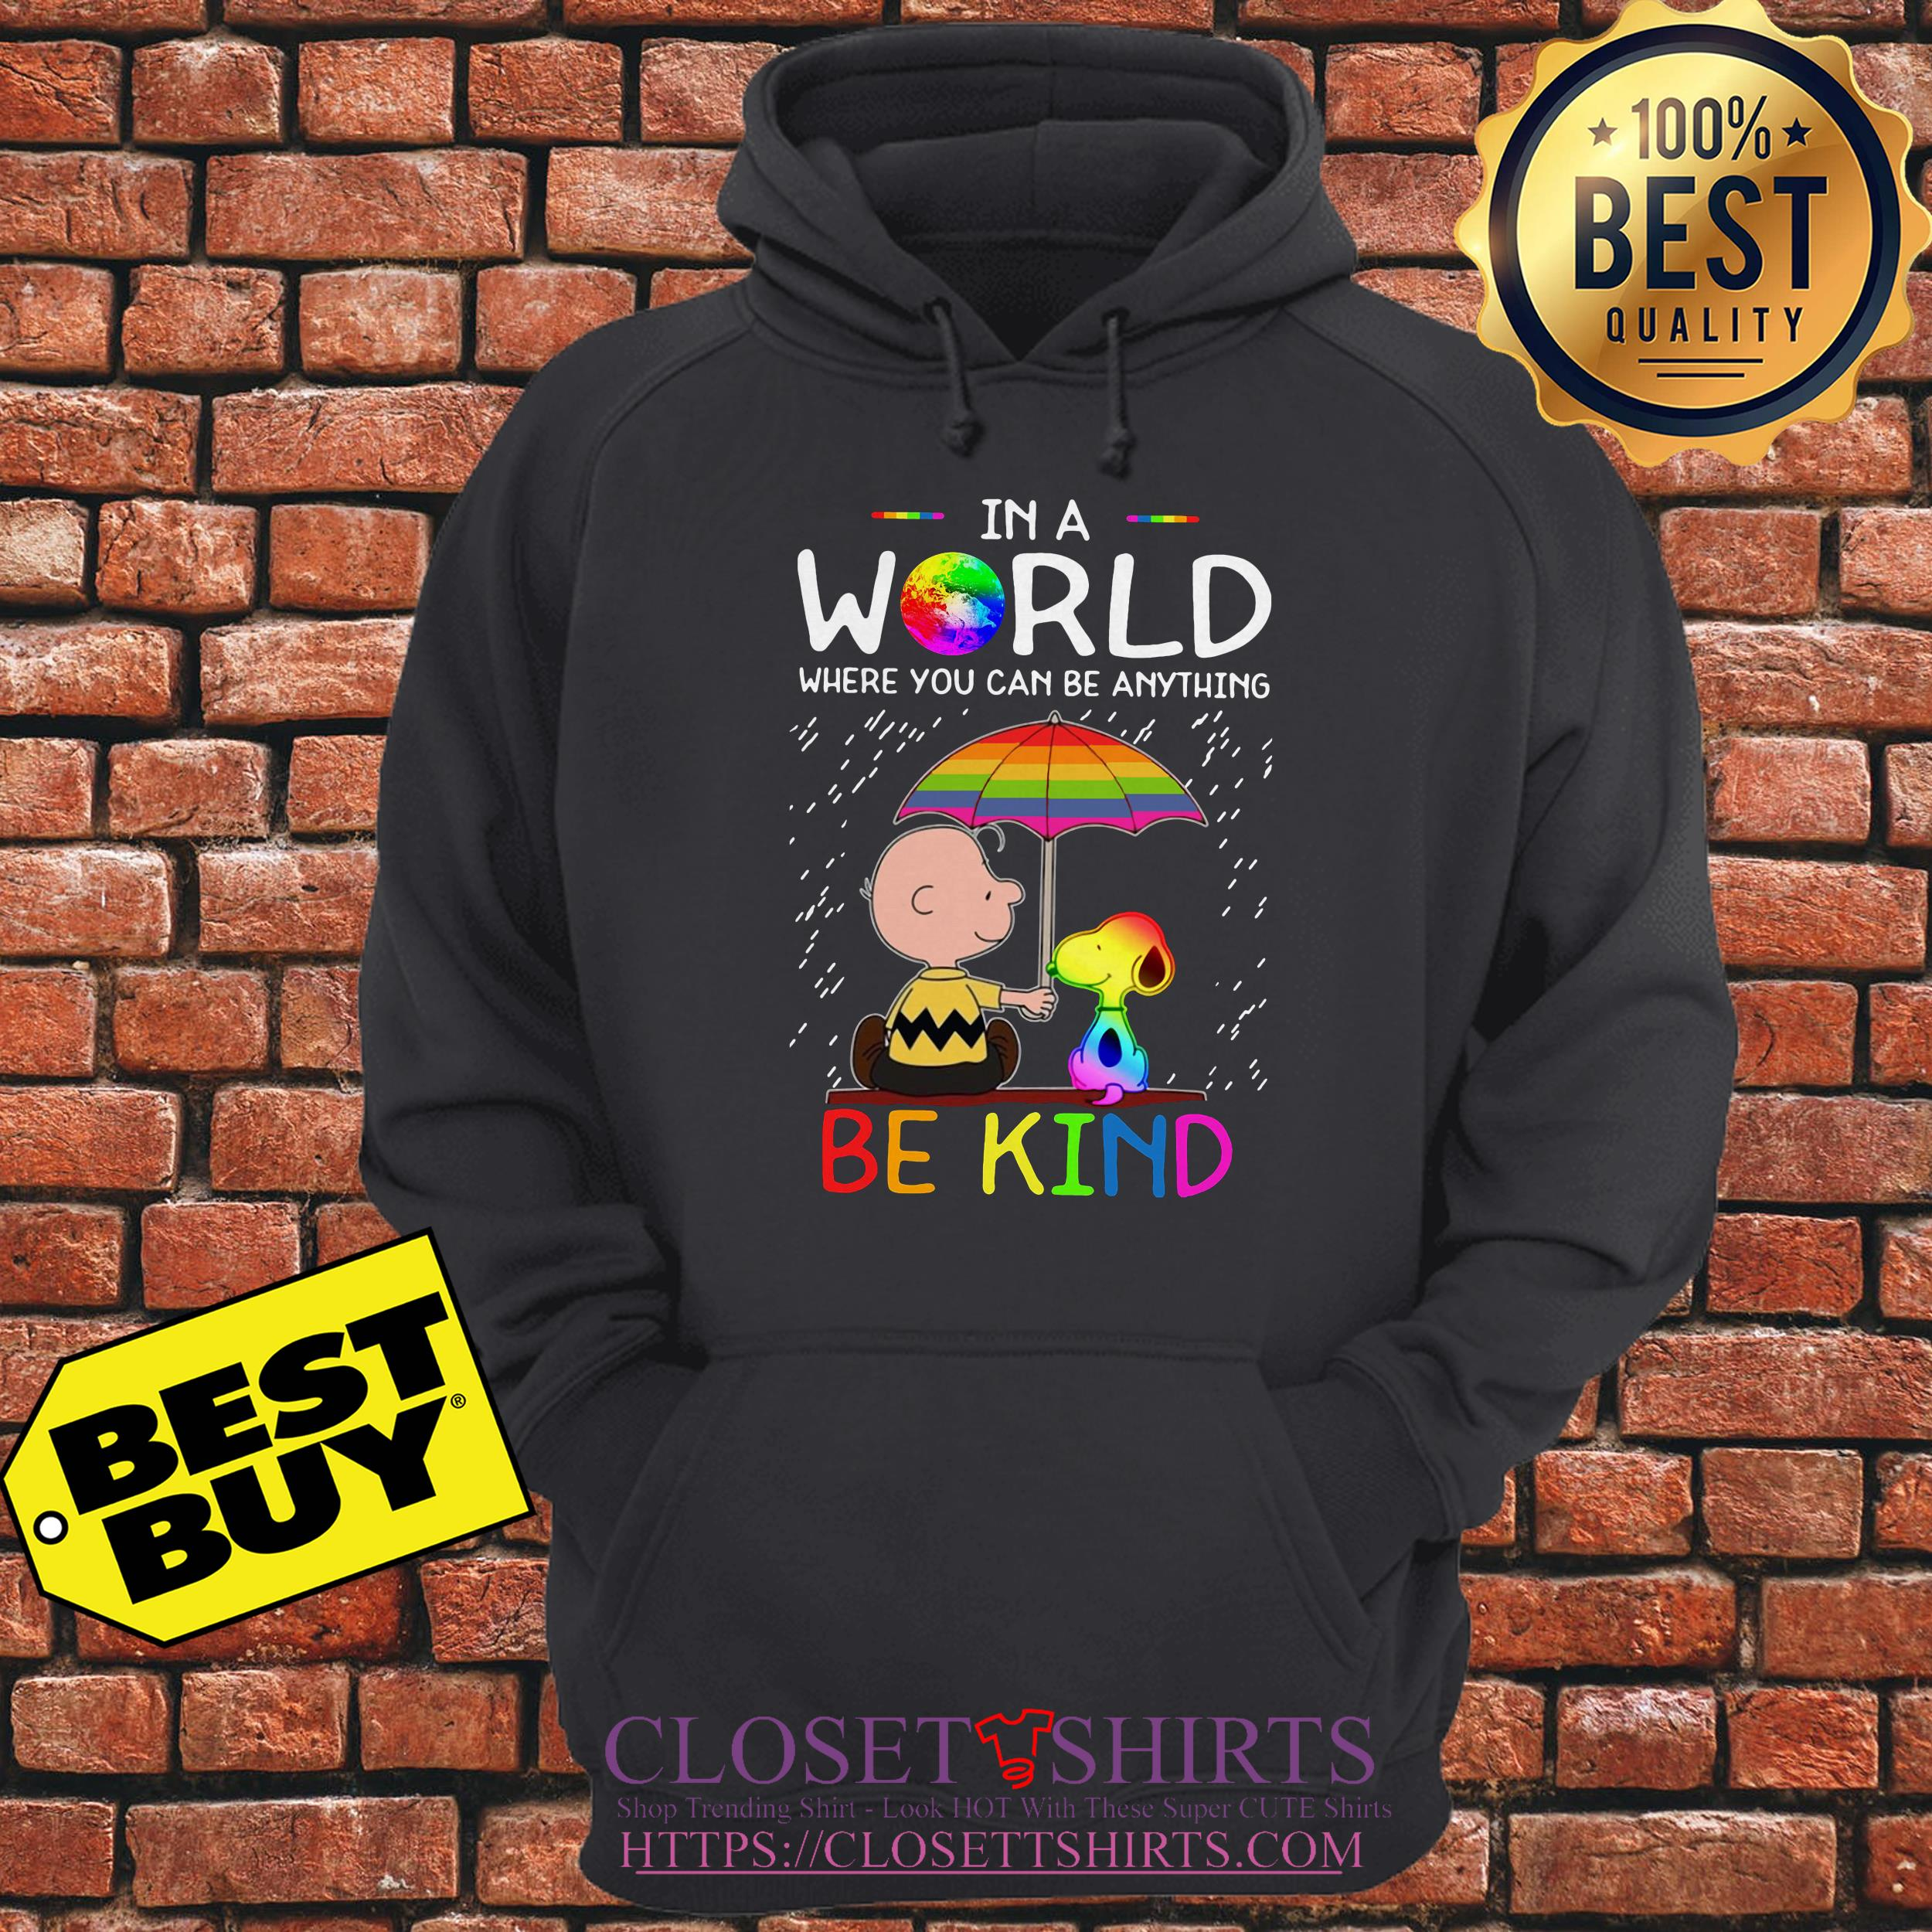 Lgbt Snoopy And Woodstock In A World Where You Can Be Anything Be Kind hoodie